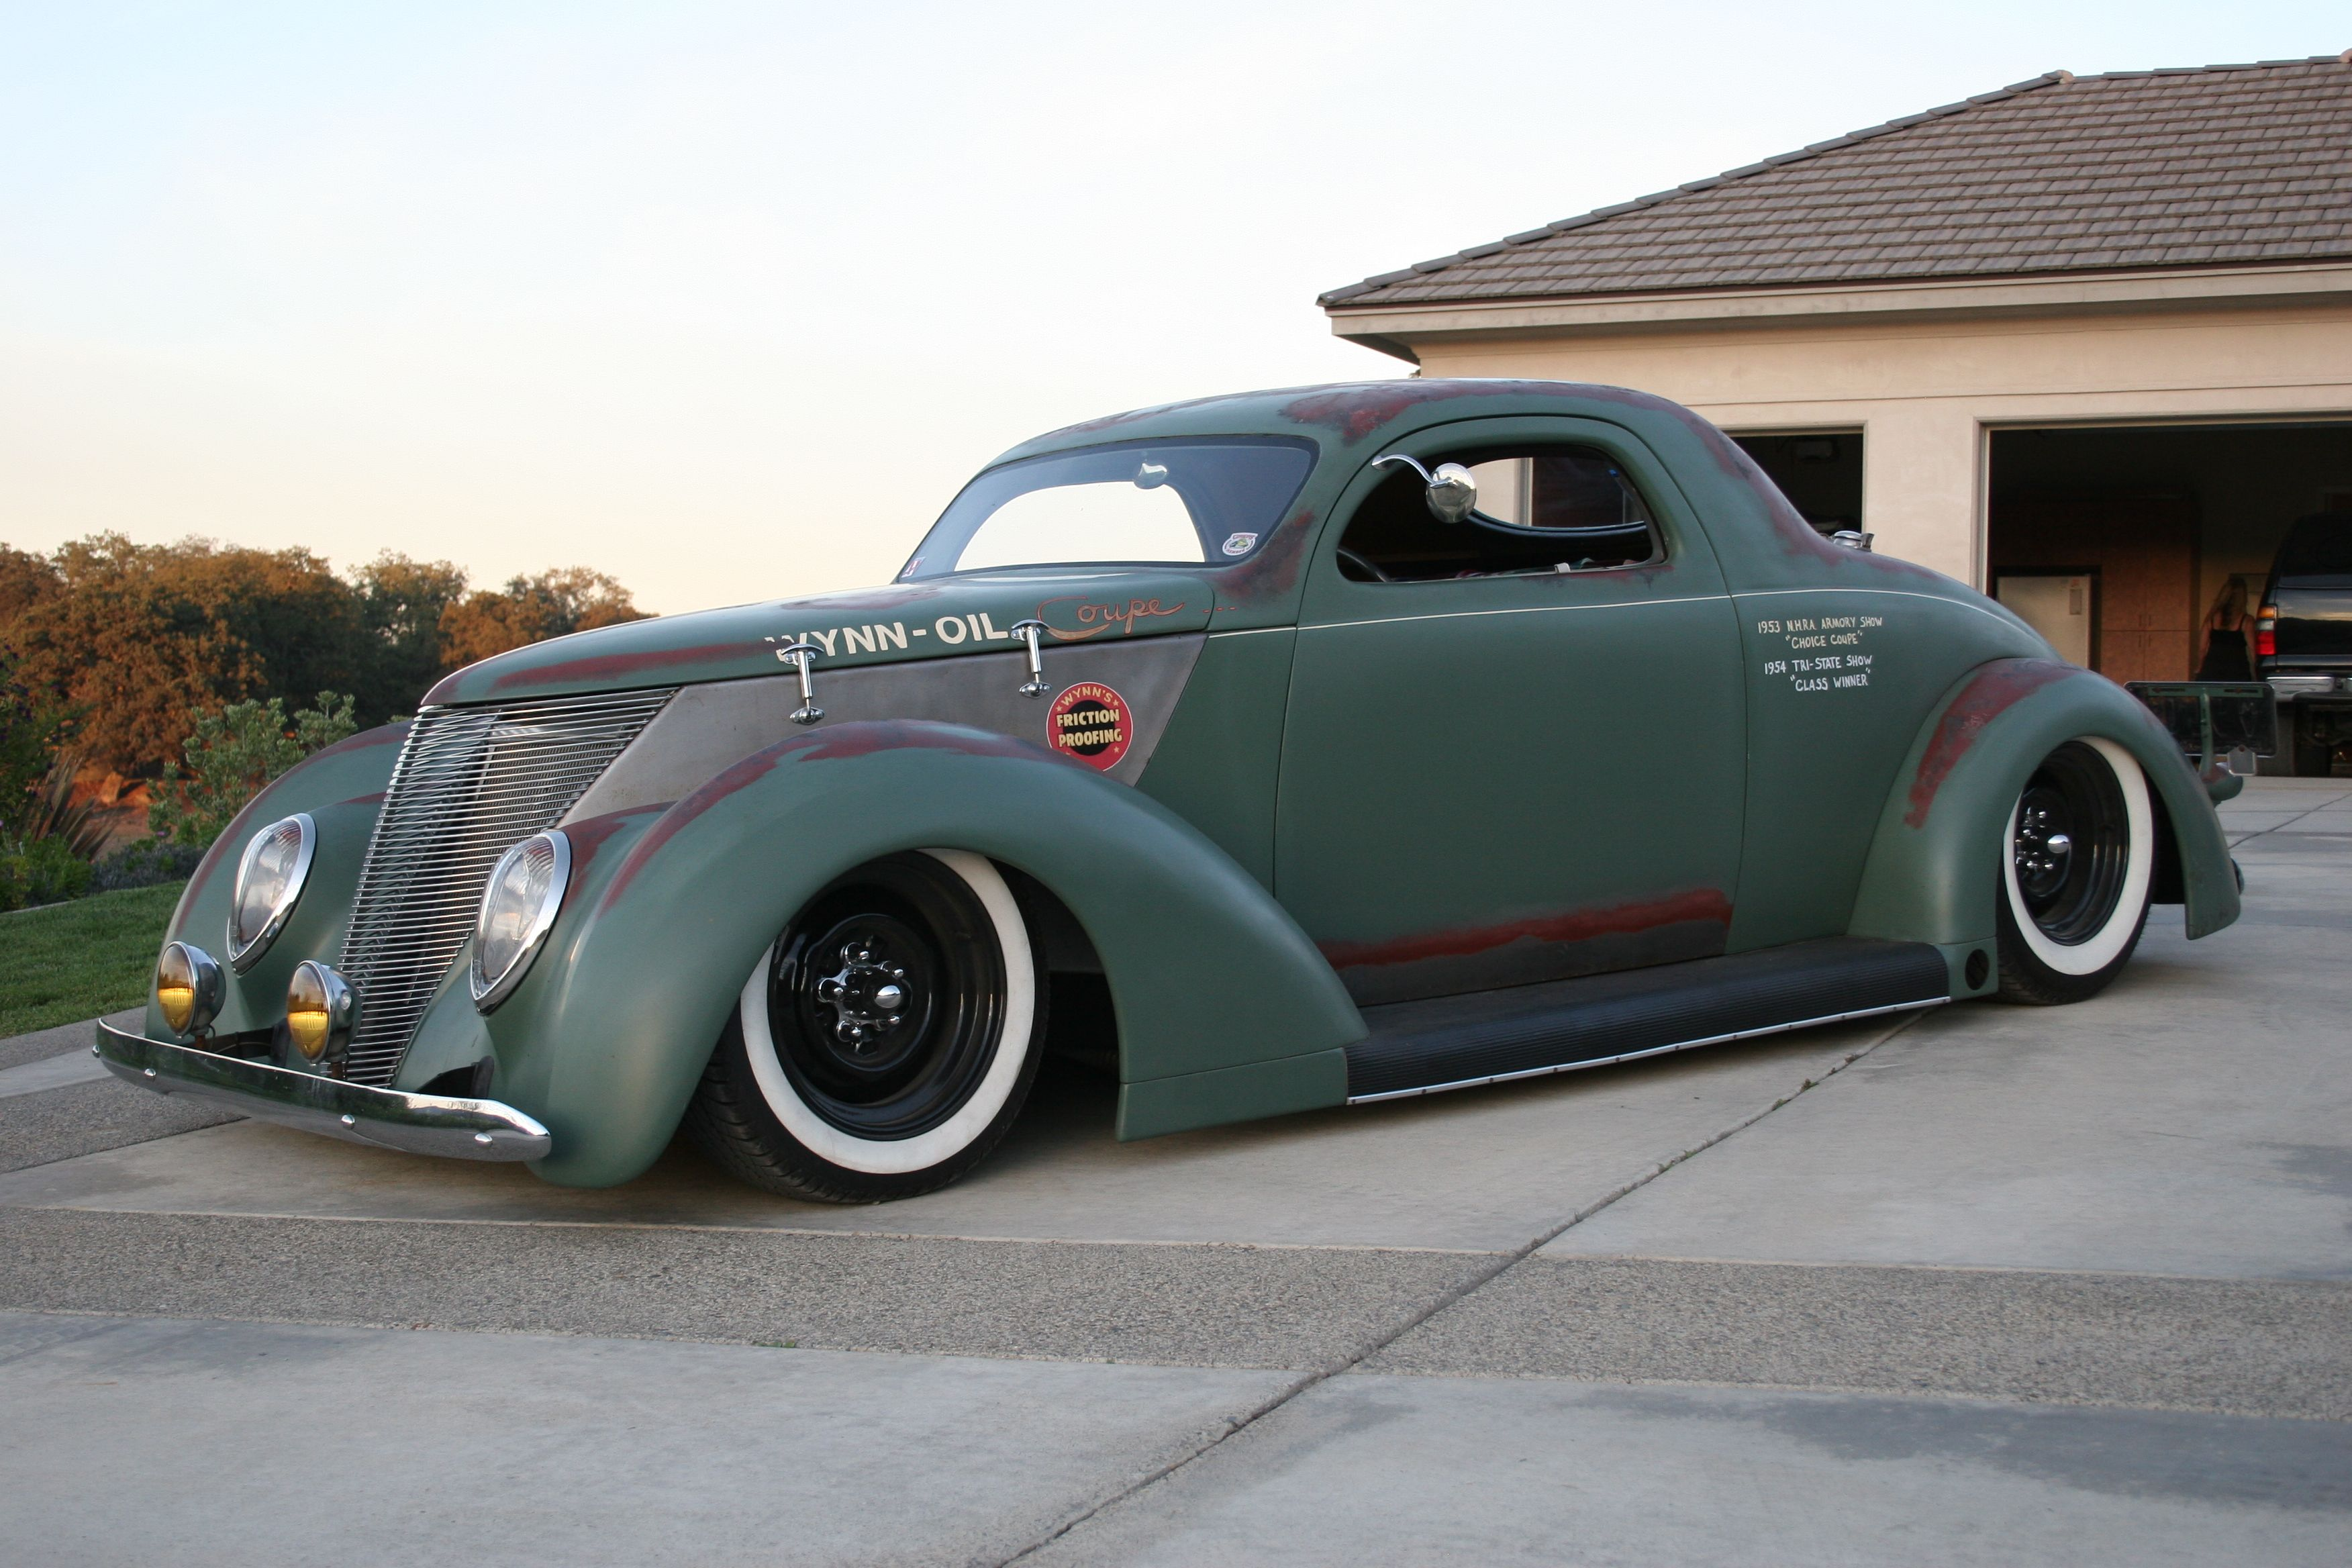 37 Ford Coupe Hot Rods Hot Cars Vintage Cars